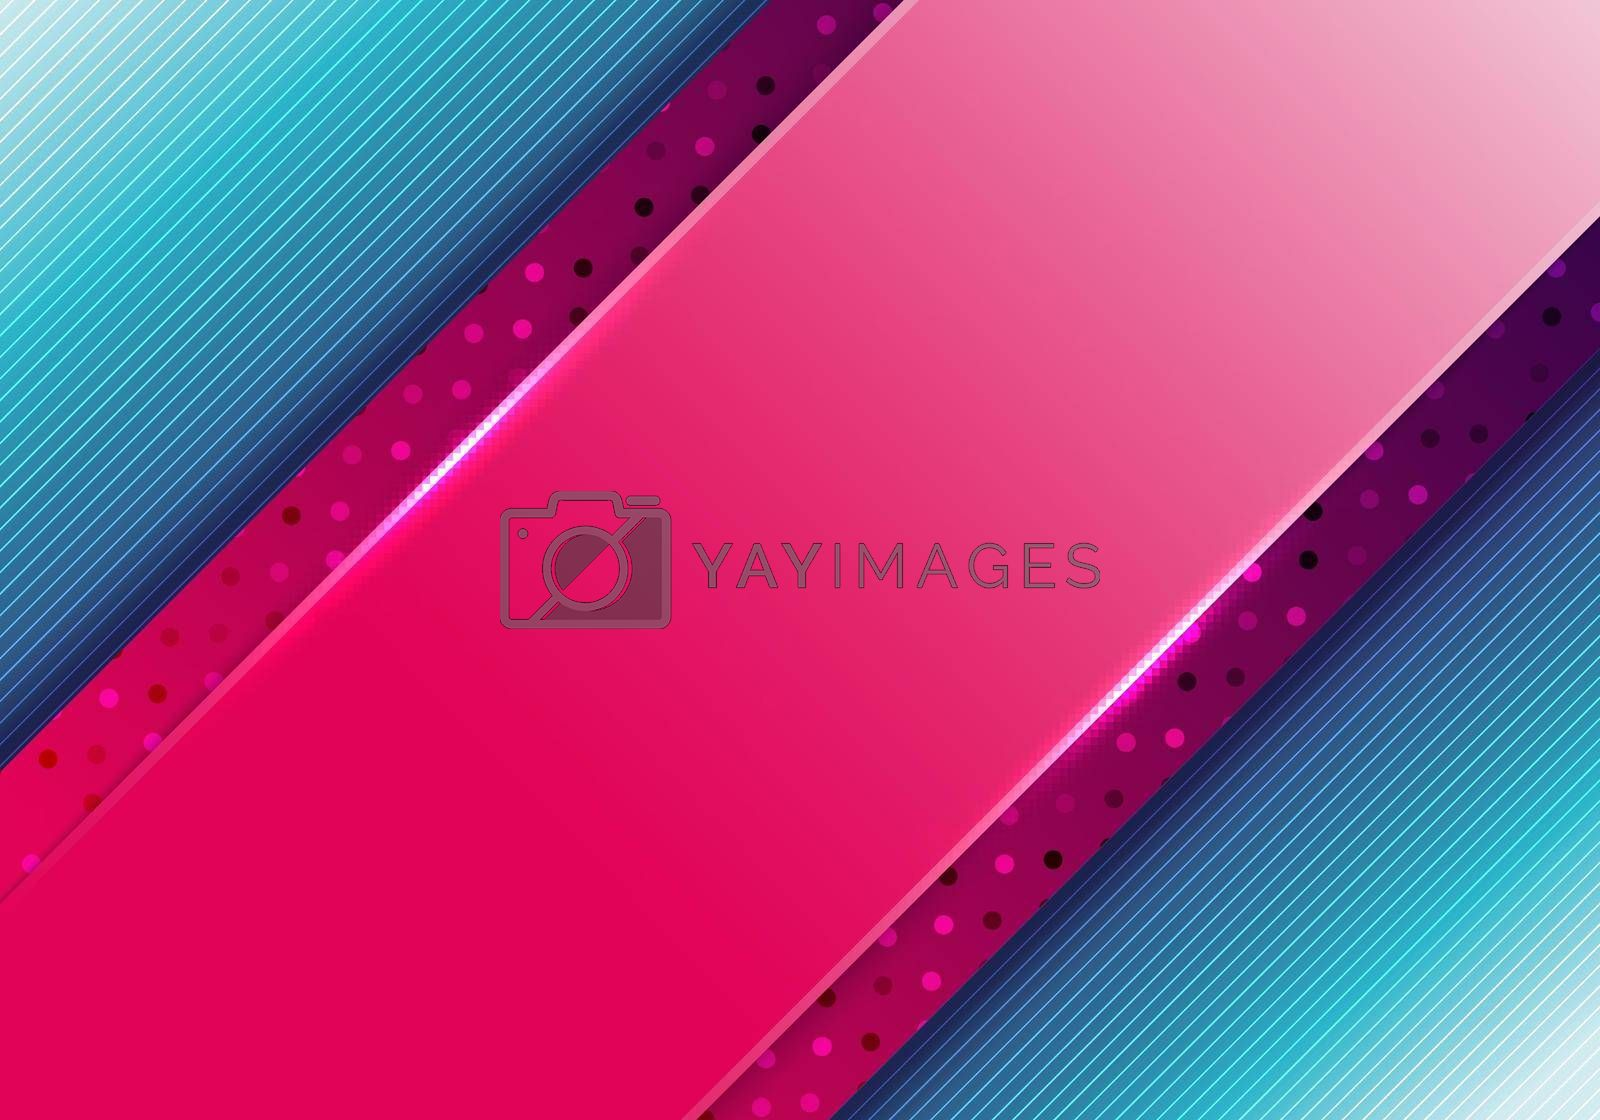 Royalty free image of Abstract business presentation template pink diagonal stripes with polka dot pattern on blue background by phochi